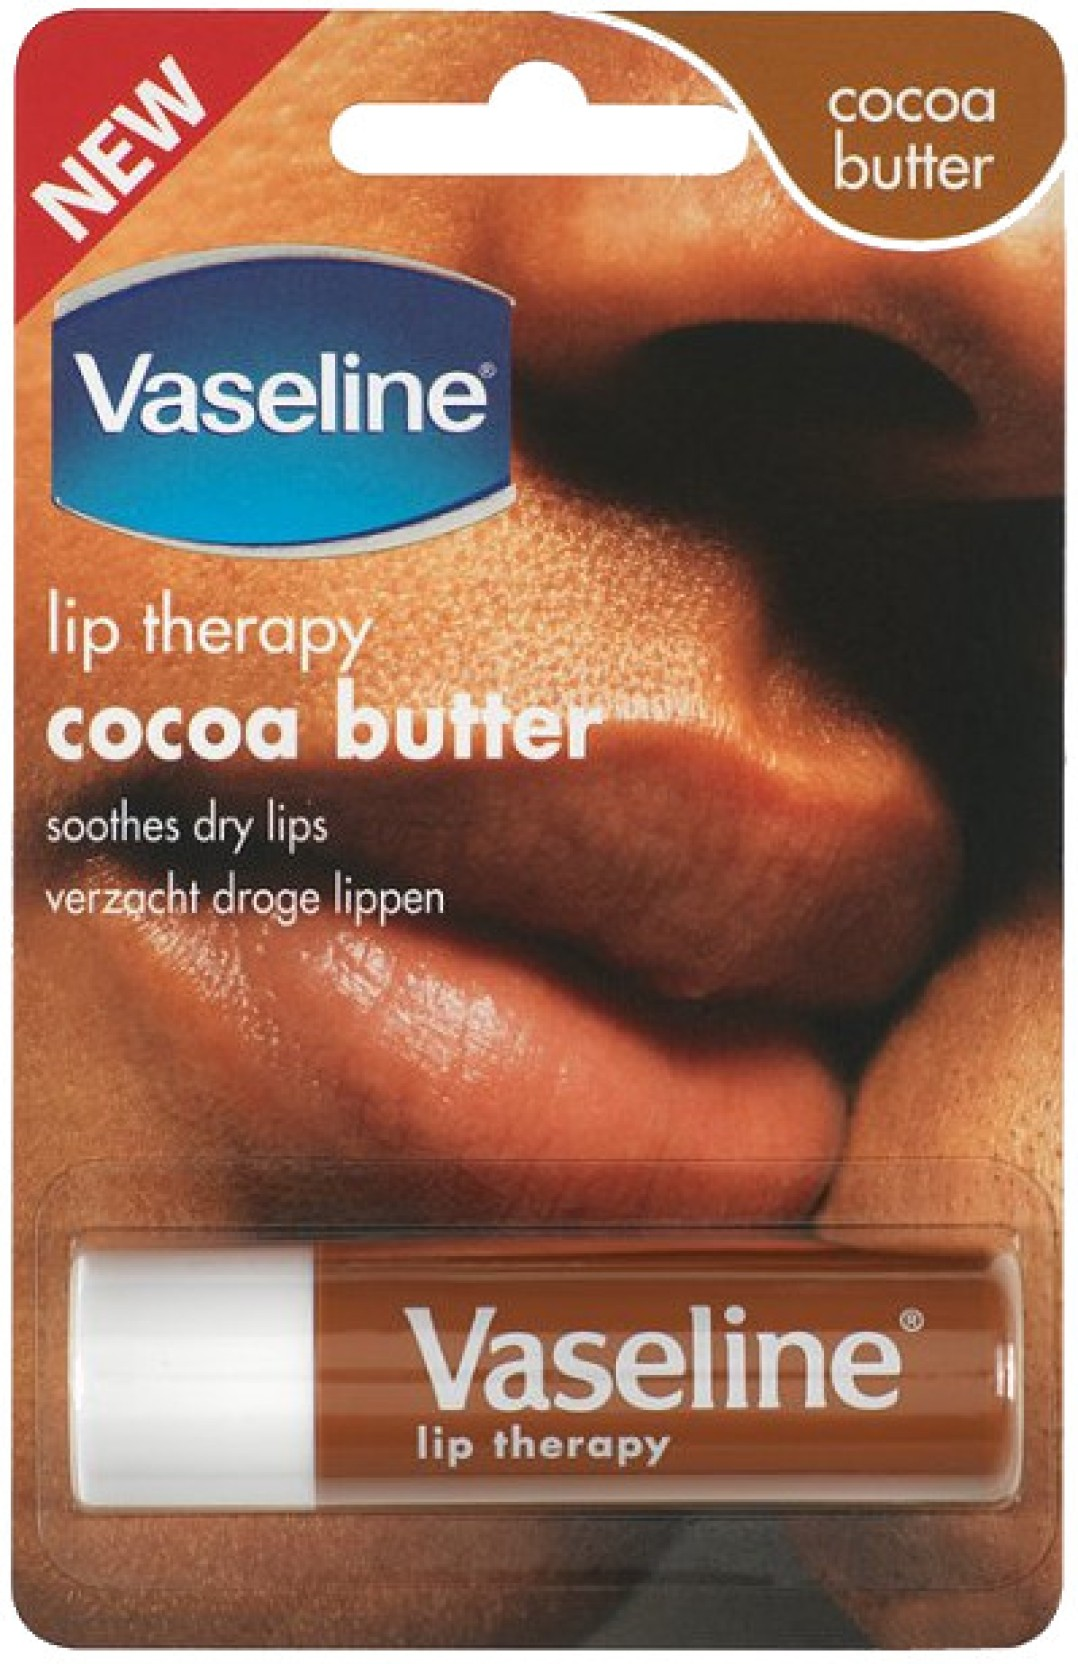 Vaseline Lip Therapy Cocoa Butter Price In India Buy Balm Rosy Lips Share